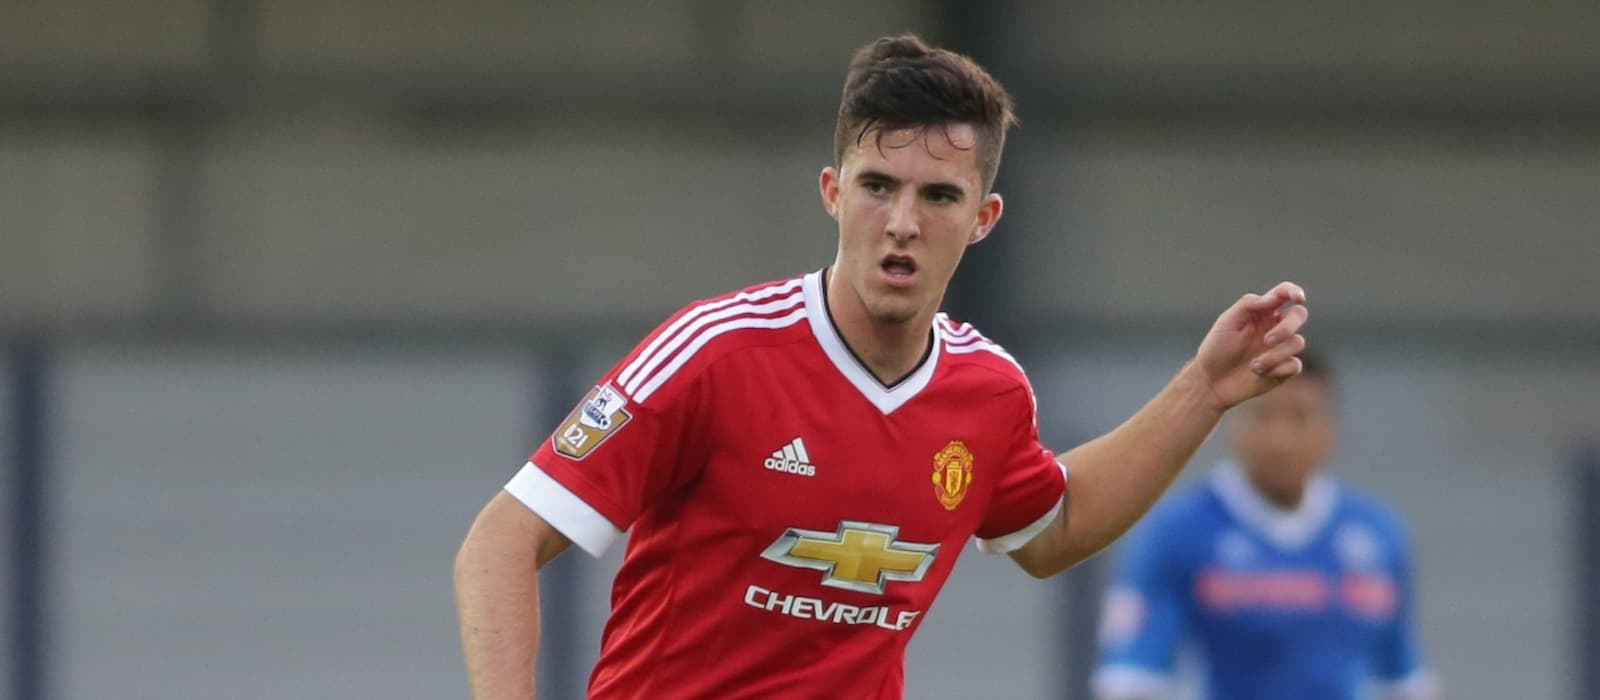 Queens Park Rangers agree £500,000 fee for Man United youngster Sean Goss